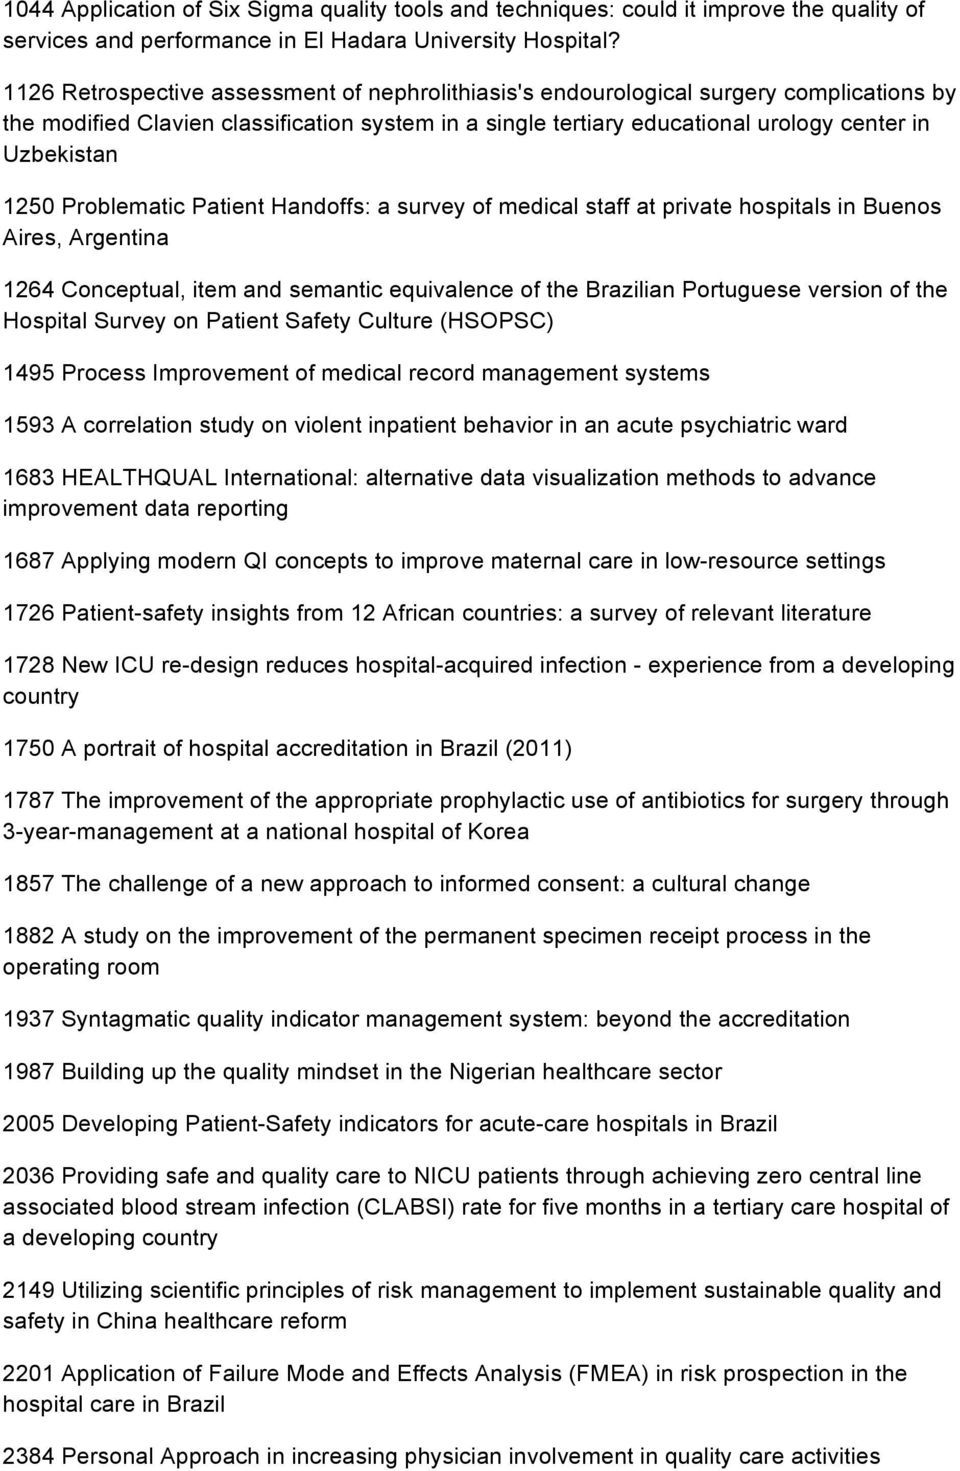 1250 Problematic Patient Handoffs: a survey of medical staff at private hospitals in Buenos Aires, Argentina 1264 Conceptual, item and semantic equivalence of the Brazilian Portuguese version of the